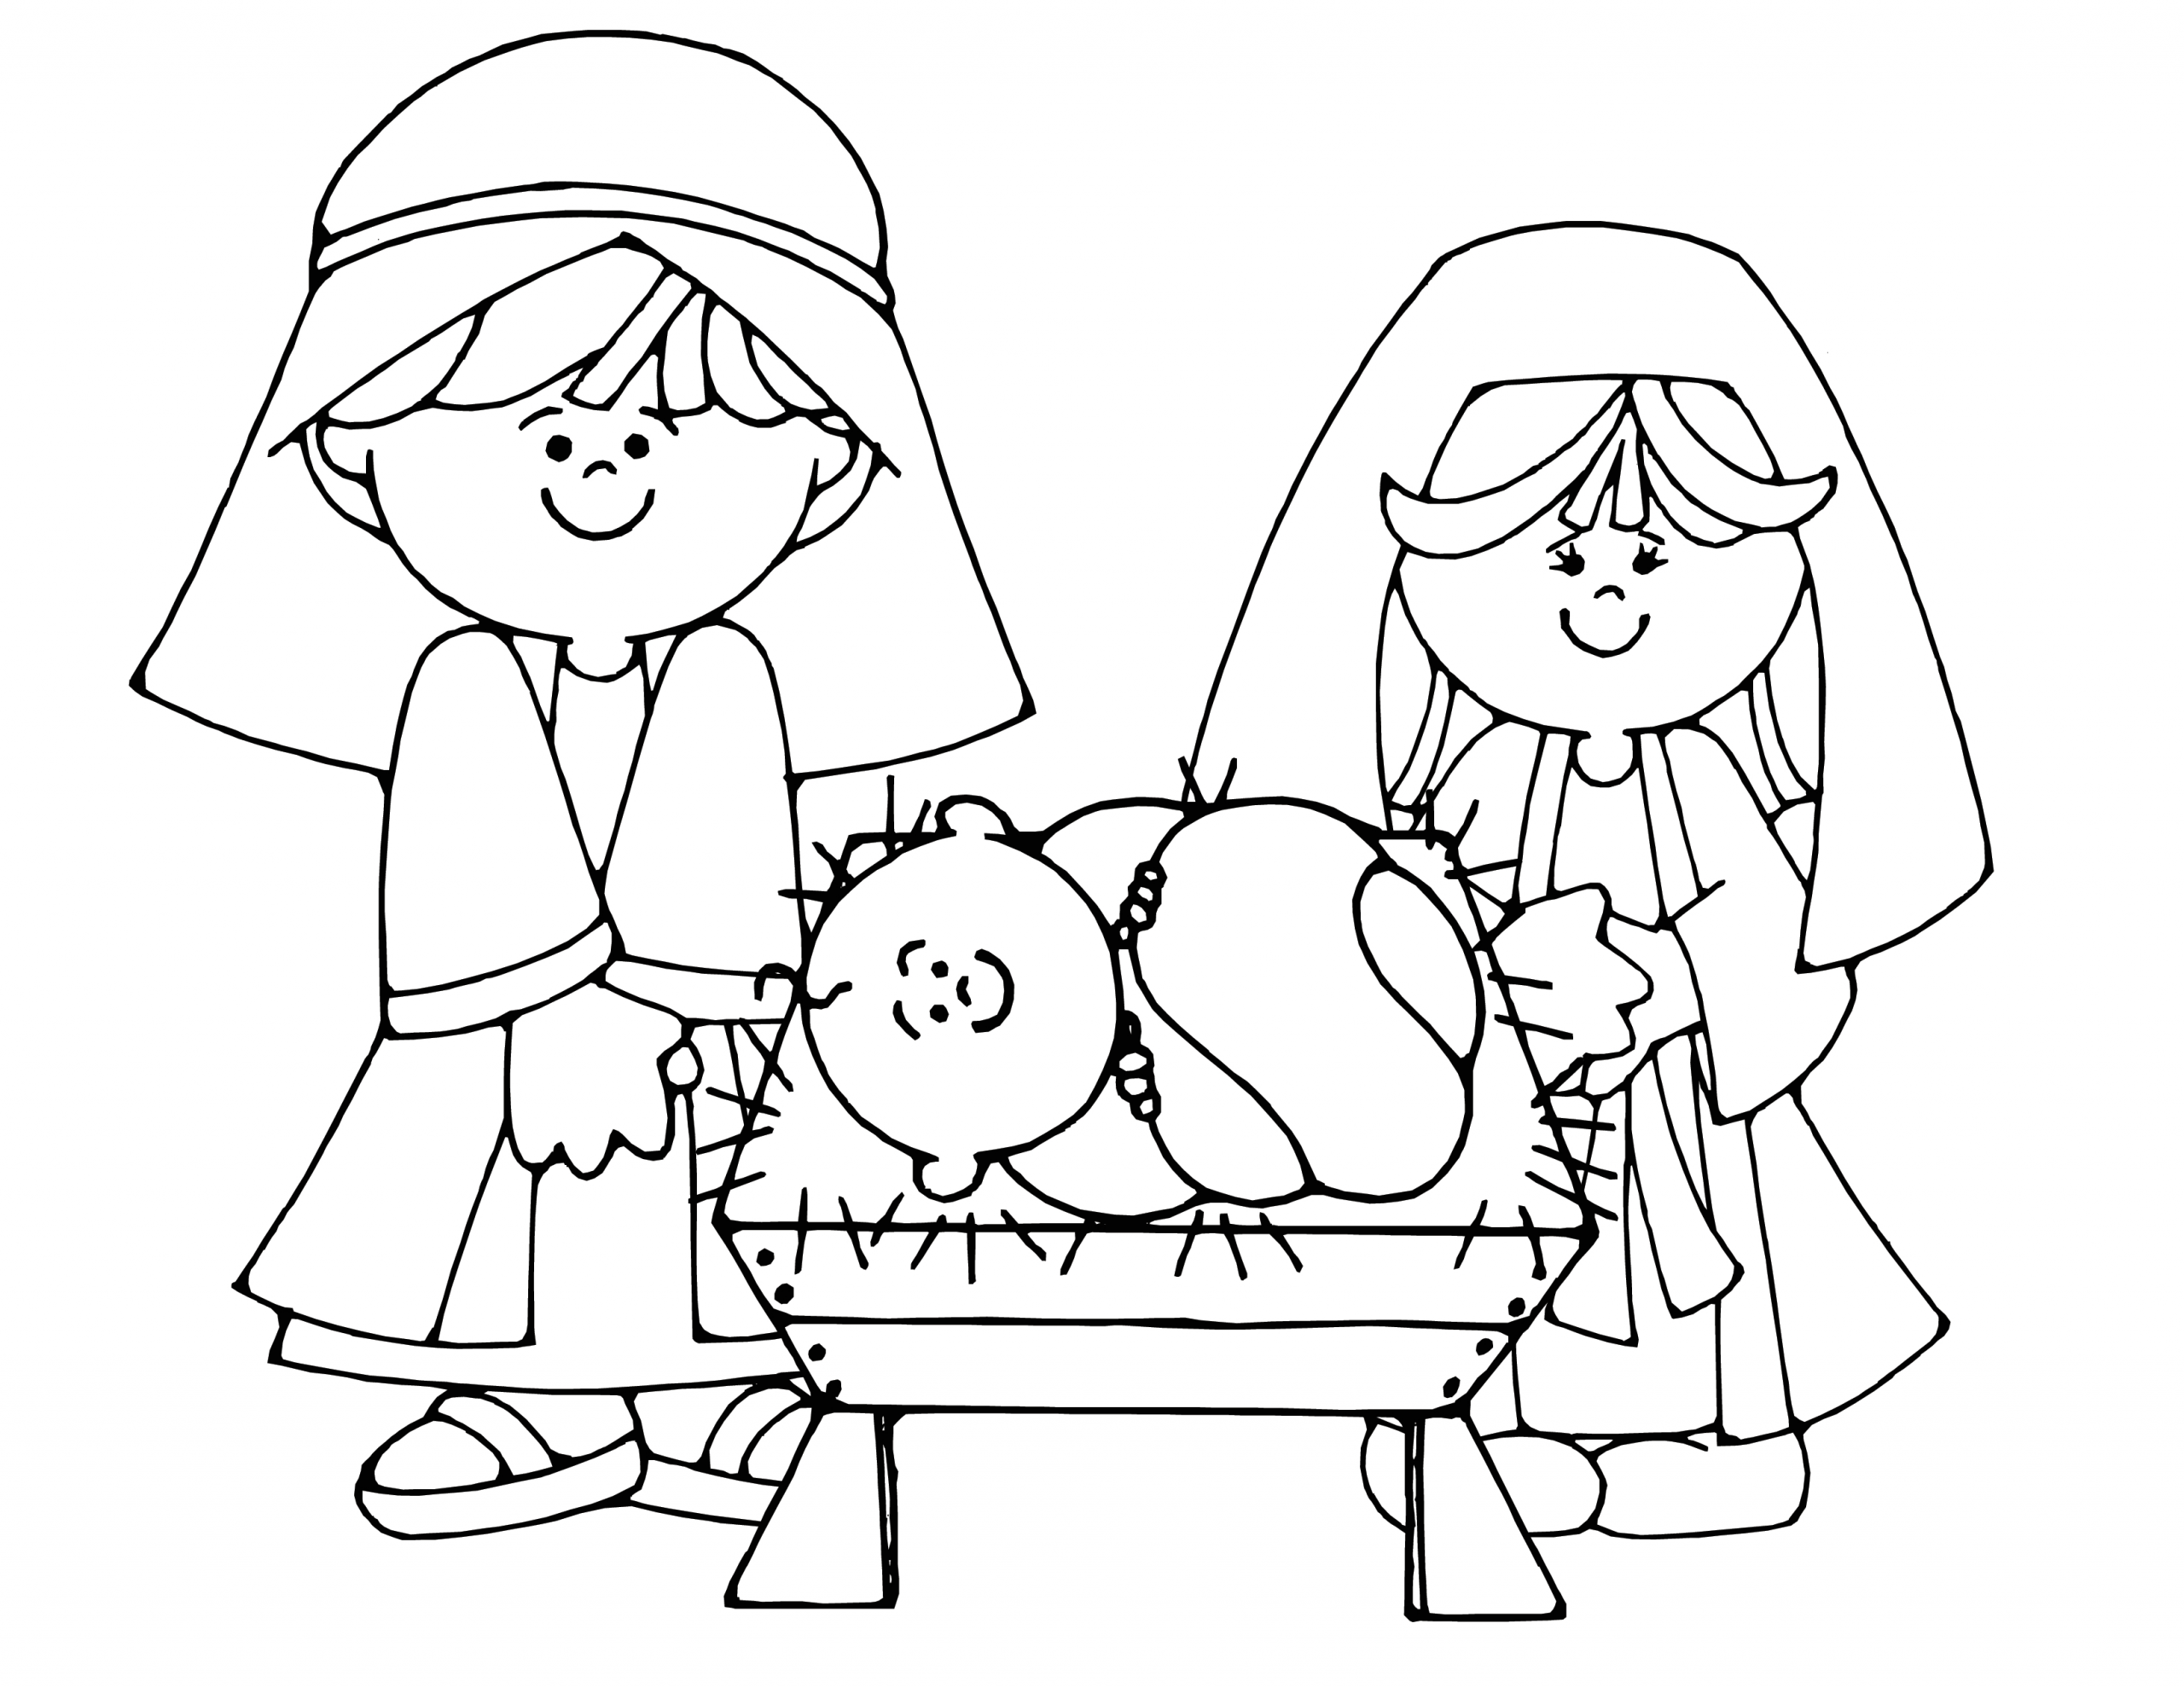 Free Printable Nativity Coloring Pages for Kids Free Printable Nativity Coloring Pages for Kids Best